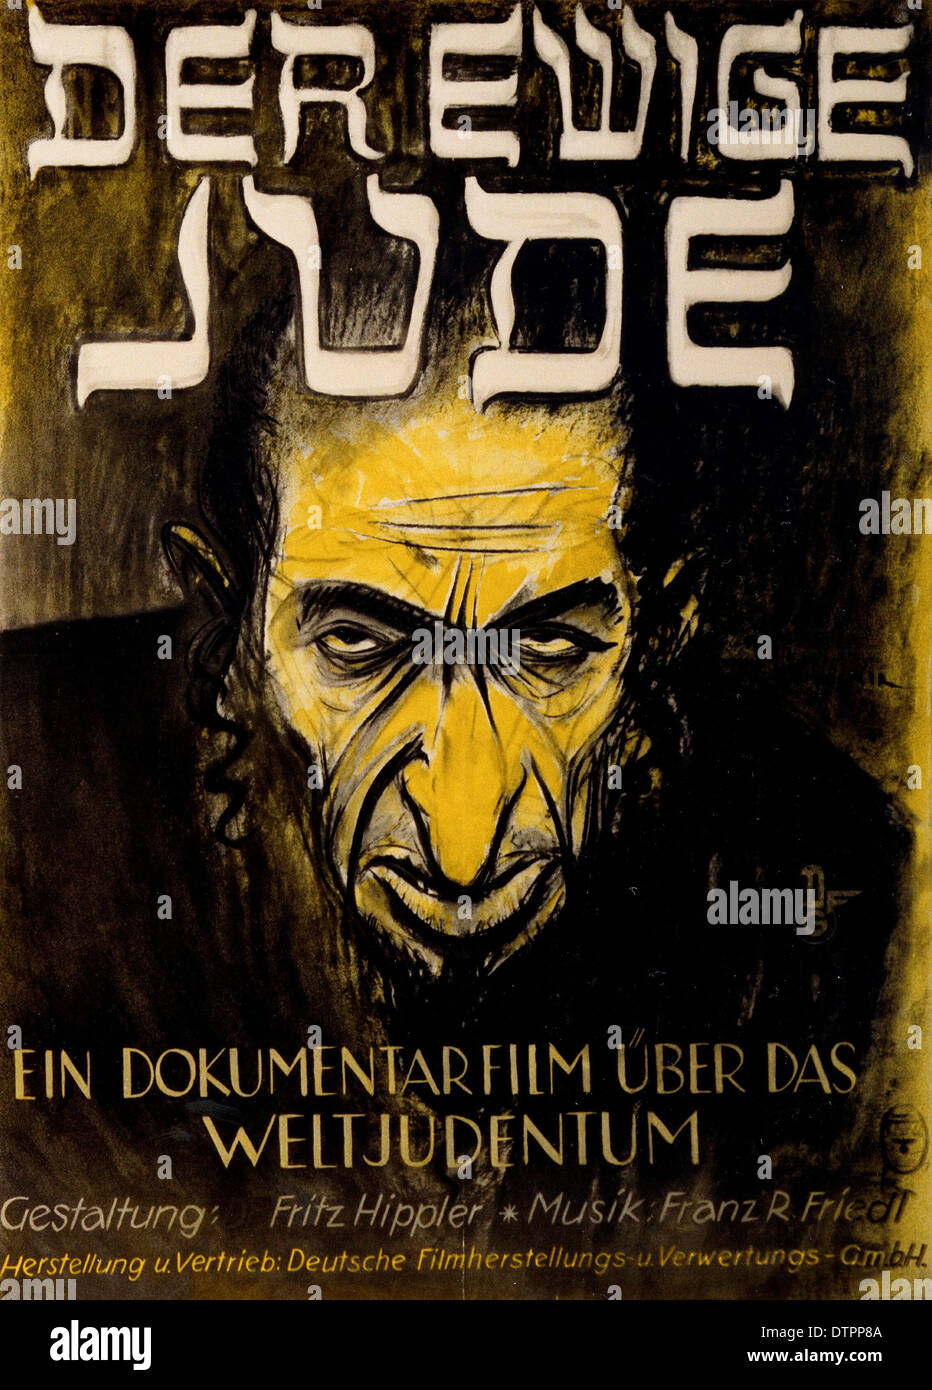 Anti Semitic propaganda poster from the German Nazi regime era in which the Jew is shown as an ugly, angry looking man. - Stock Image